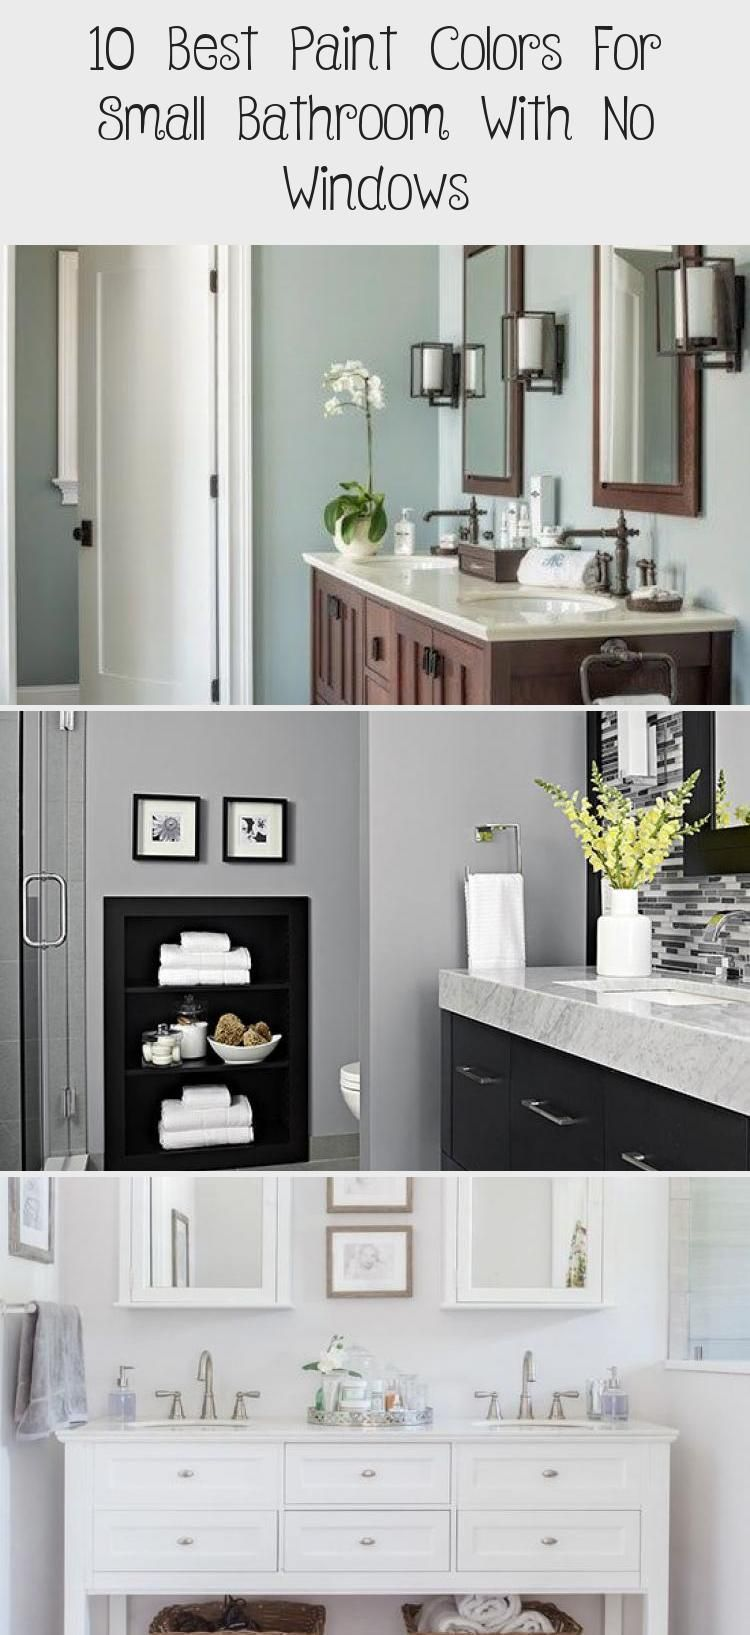 A Comprehensive Overview On Home Decoration Small Bathroom